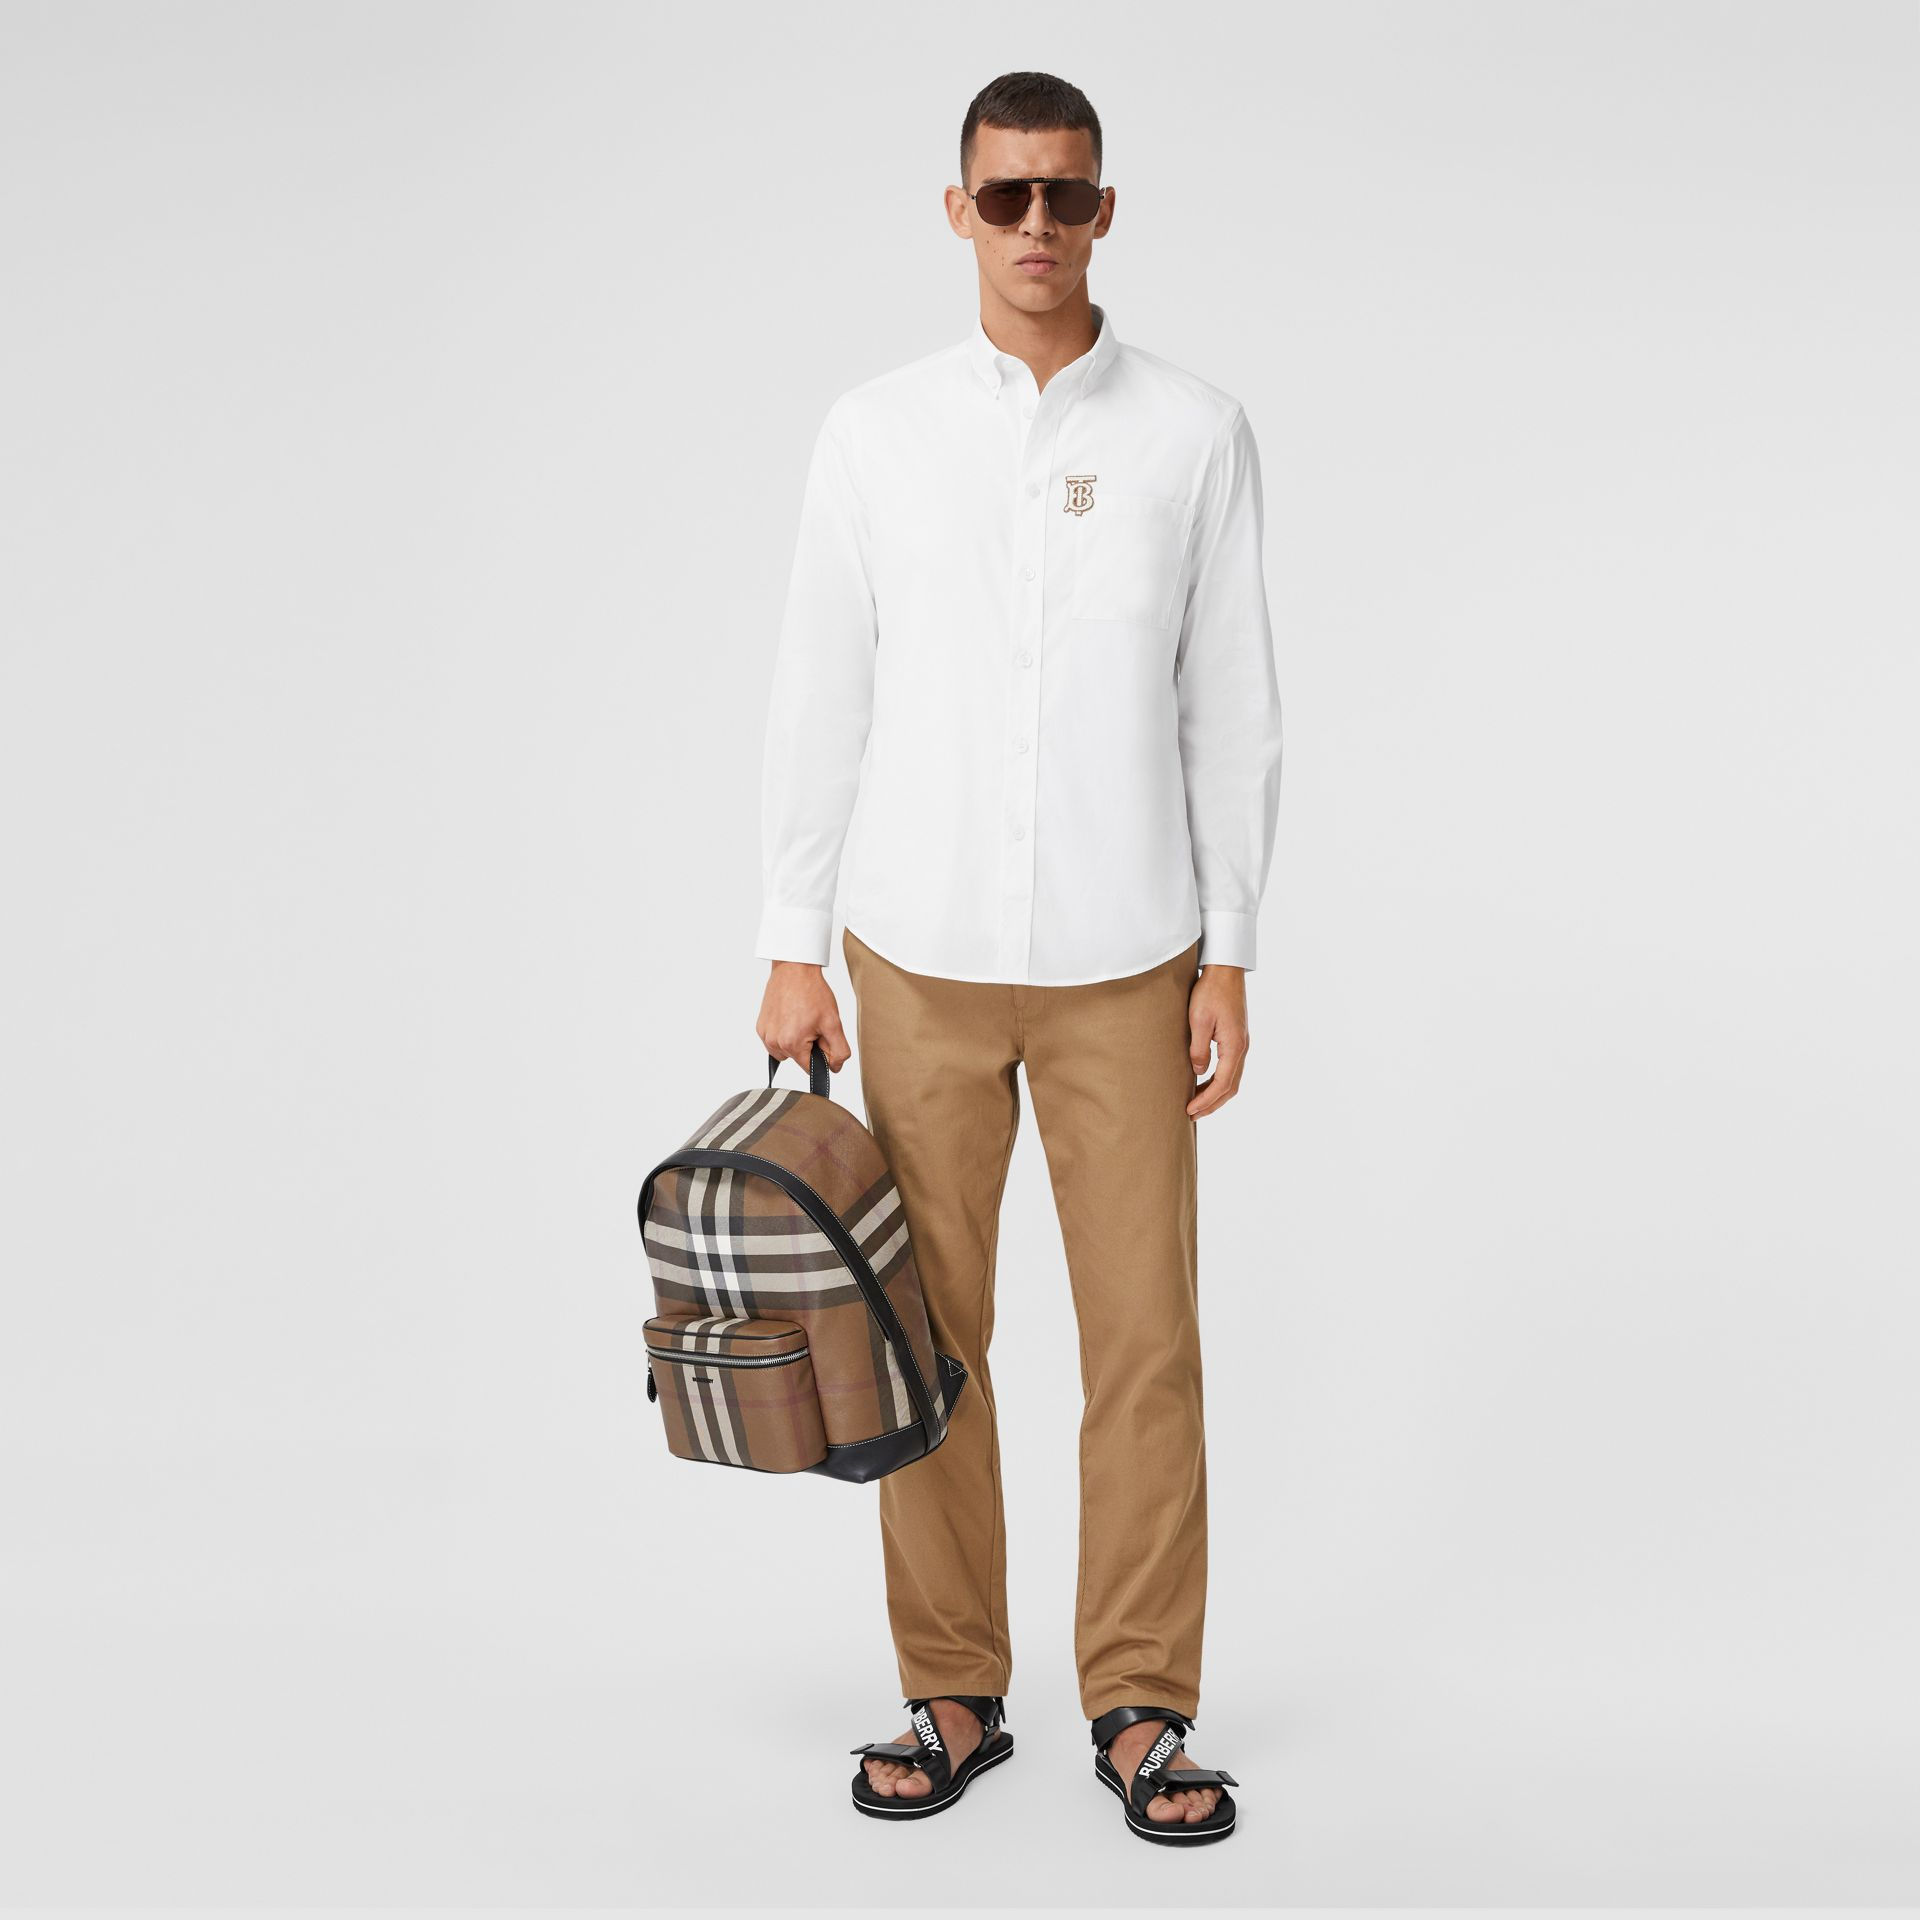 Monogrom Motif Stretch Cotton Poplin Shirt in White - Men | Burberry Hong Kong S.A.R. - gallery image 5